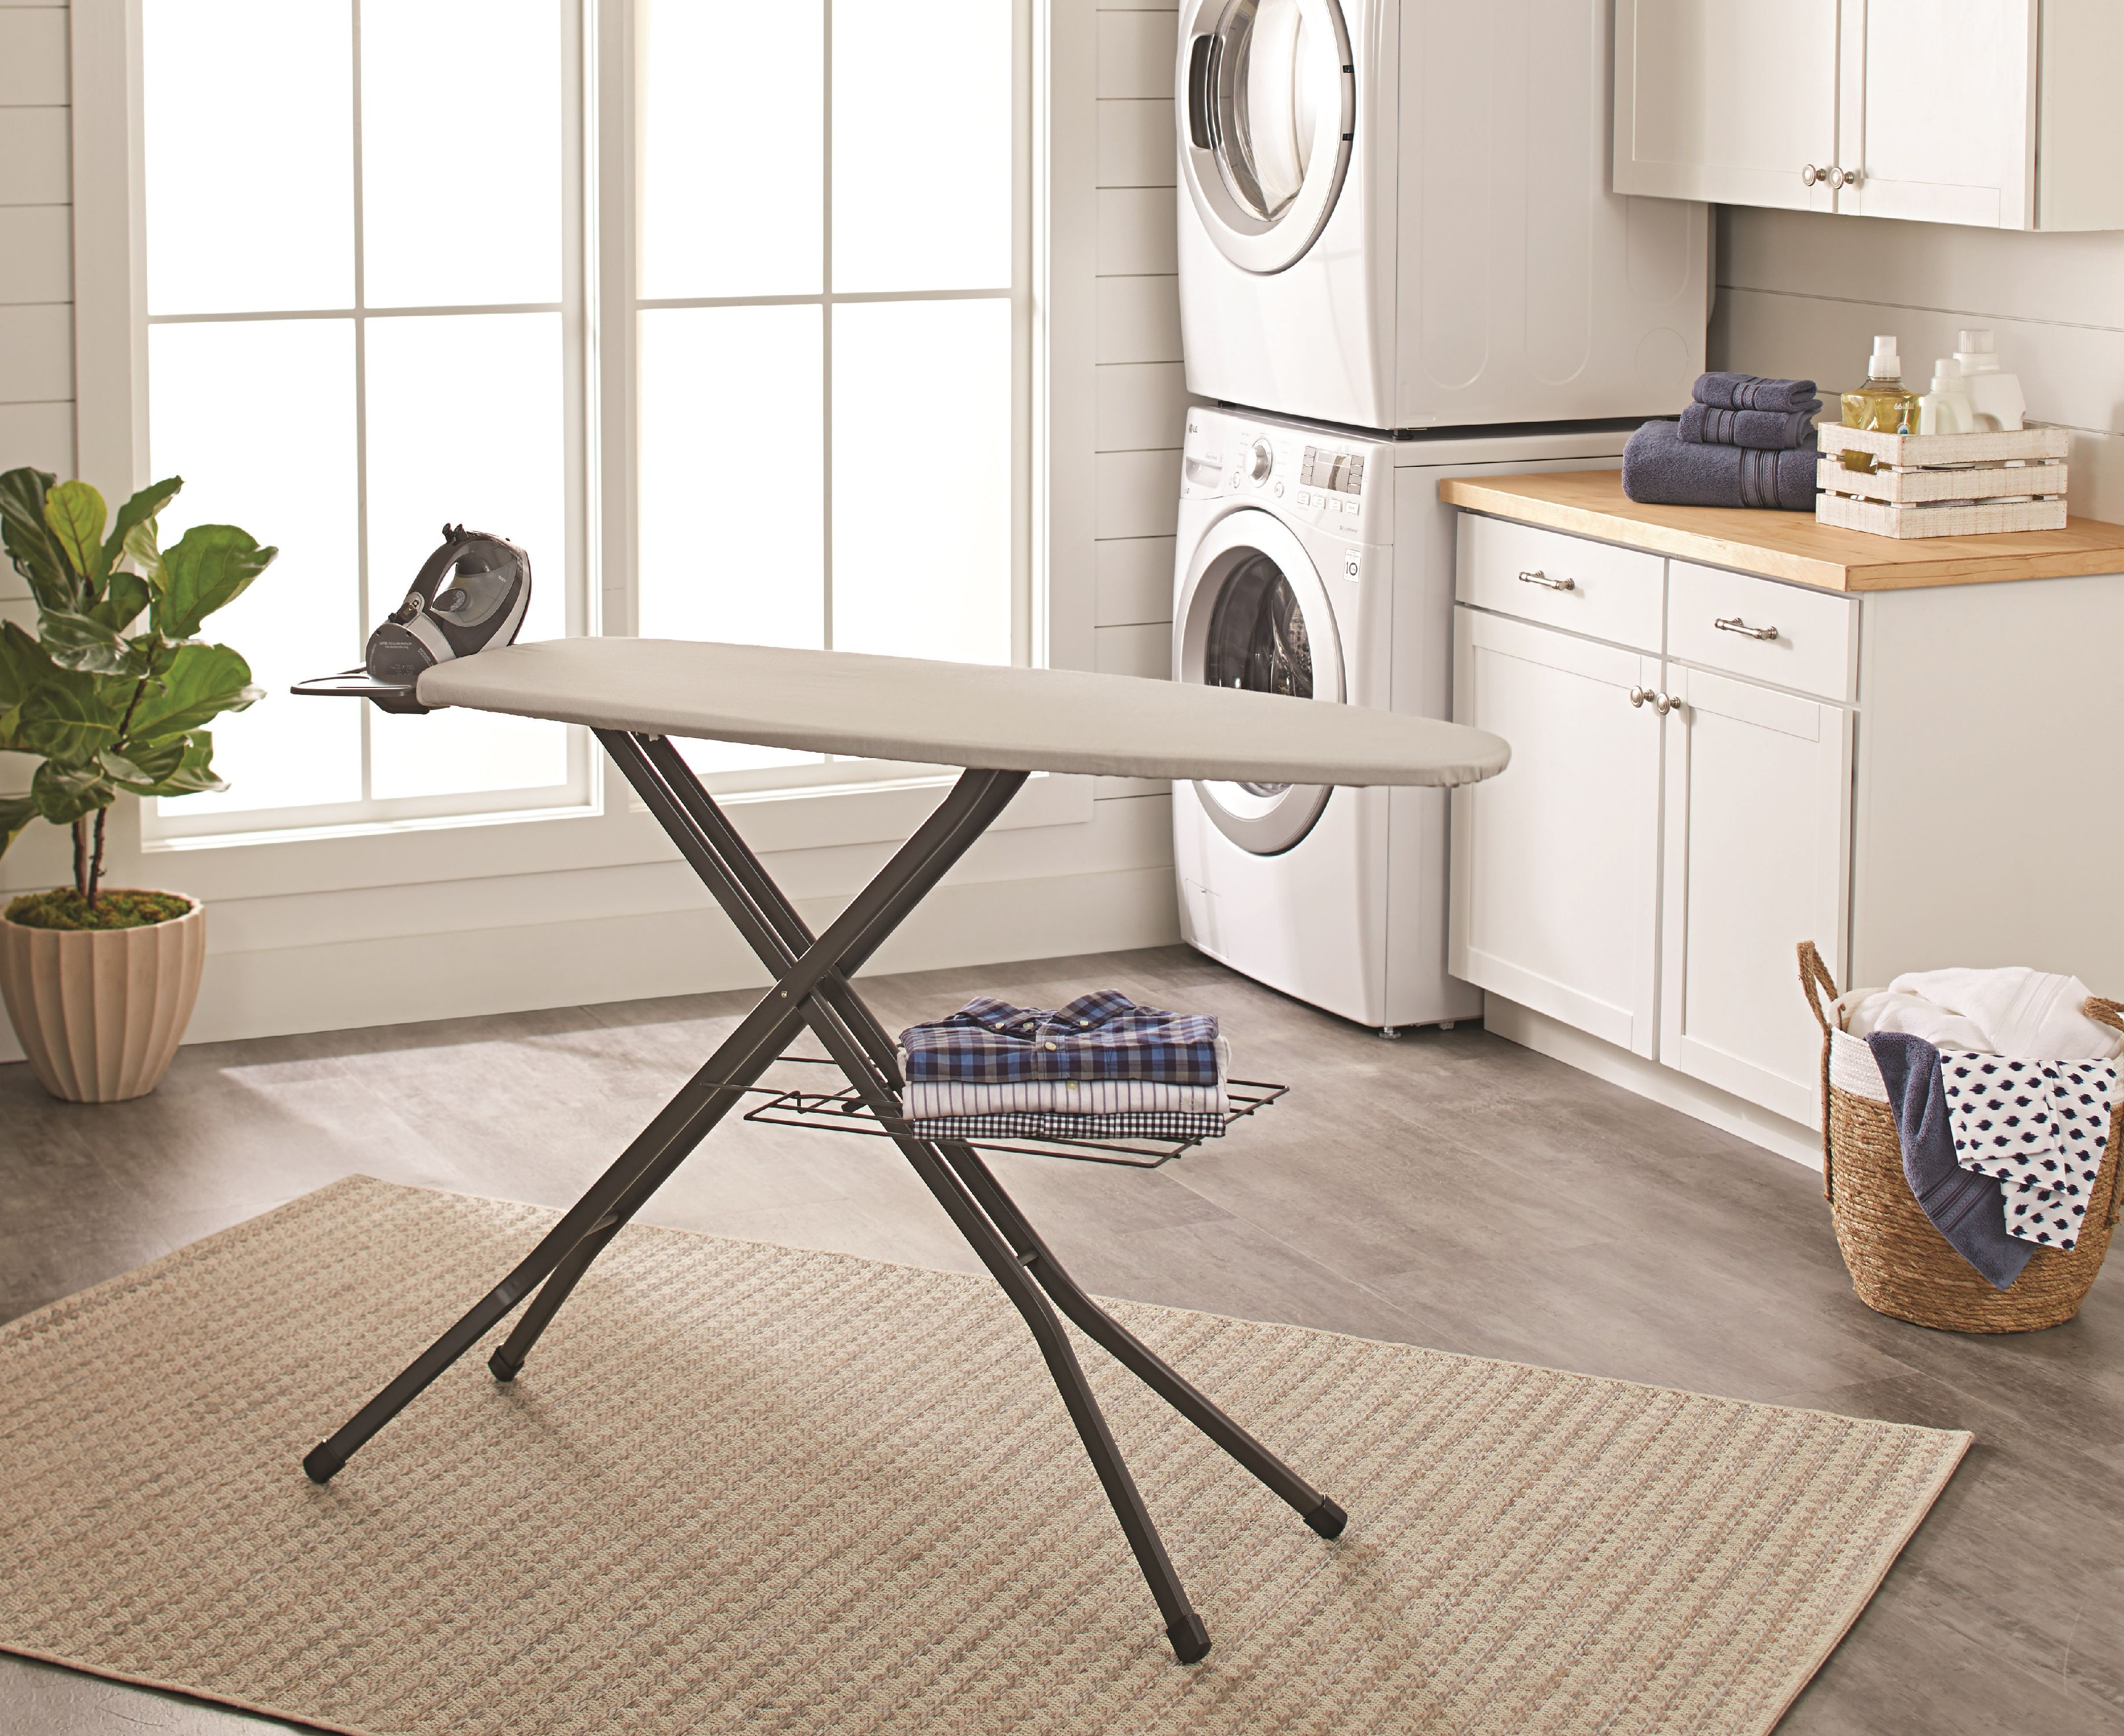 Better Homes & Gardens Wide Top Ironing Board Grey Pumice by Better Homes & Gardens